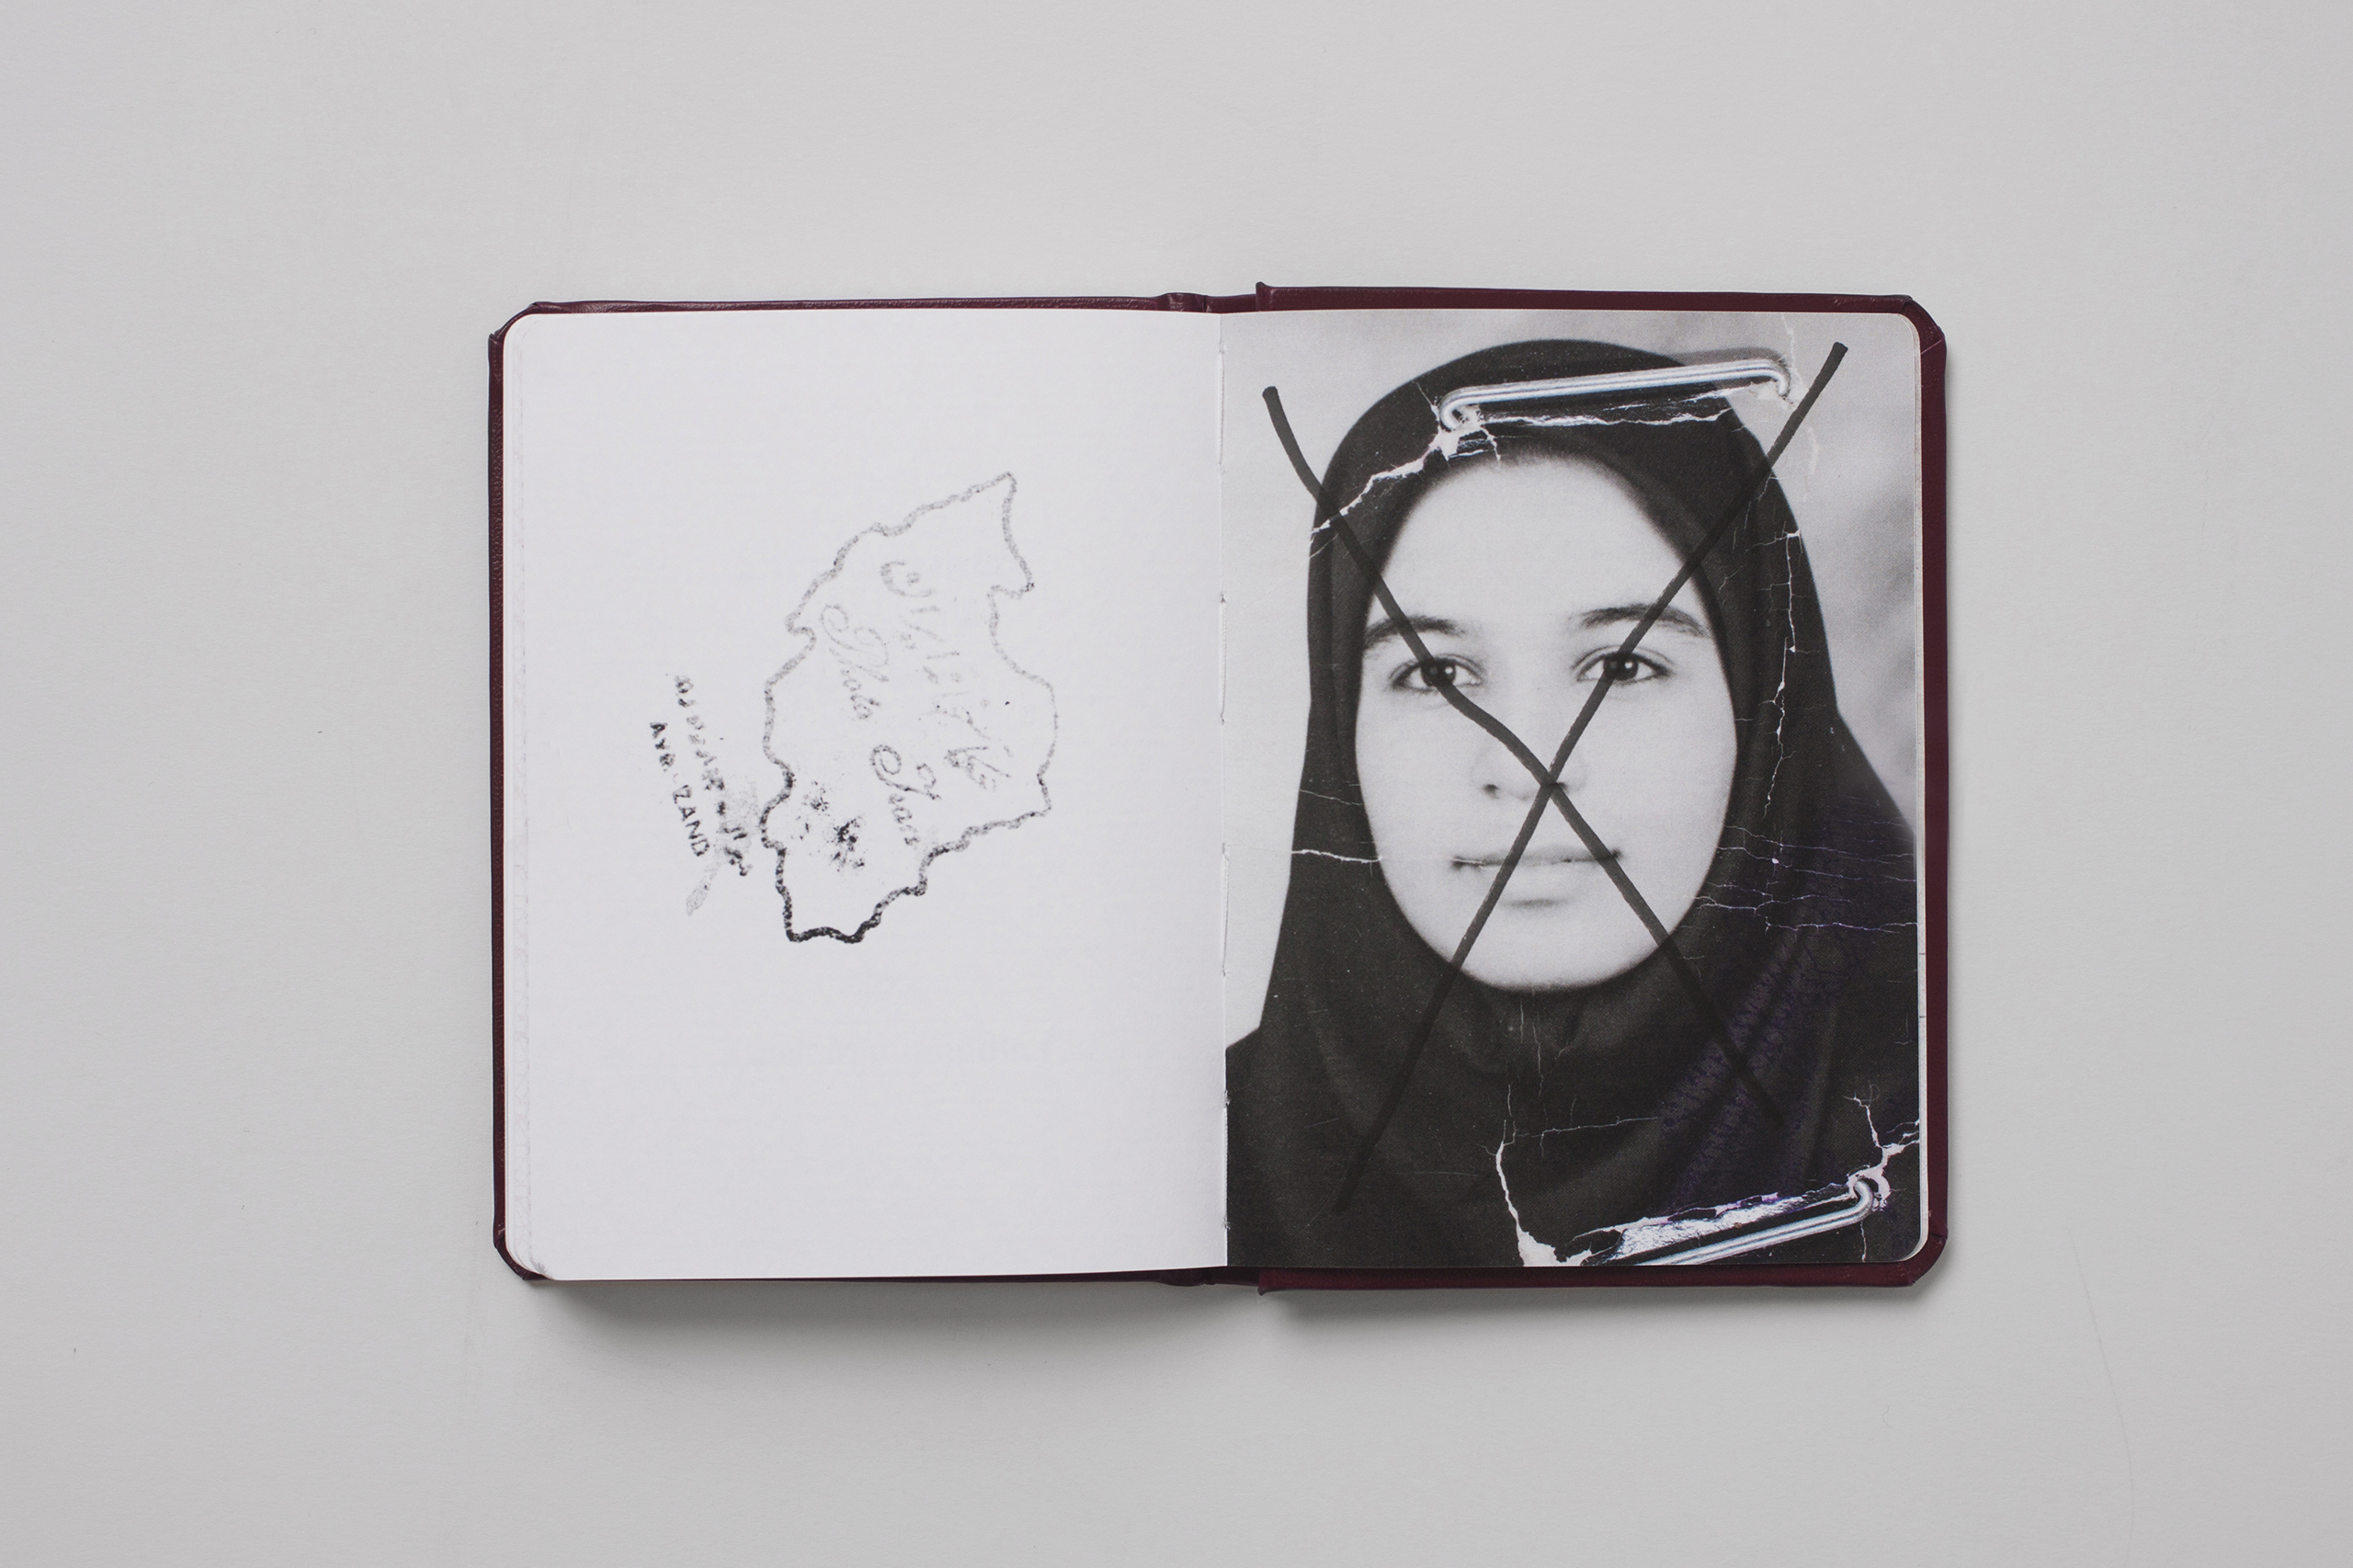 Selected by photography writer, curator and collector Larissa Leclair, the founder of Indie Photobook Library:  Valid for life, Shenasnameh originally is the name of the birth certificate issued in Iran, a passport-like document that must be updated during a woman's life depending on dress code laws. Each page of Mahmoodian's Shenasnameh portrays women dressed in hijab; no hair showing, presented in a simple, repetitive typology study. This design is interrupted by larger photographs, some with eyes, which may have been too expressive, scribbled out. The work reflects men that impose such constraints. Yet, the unique fingerprints and subtleties in expression hint at each woman's individuality, character and strength.""